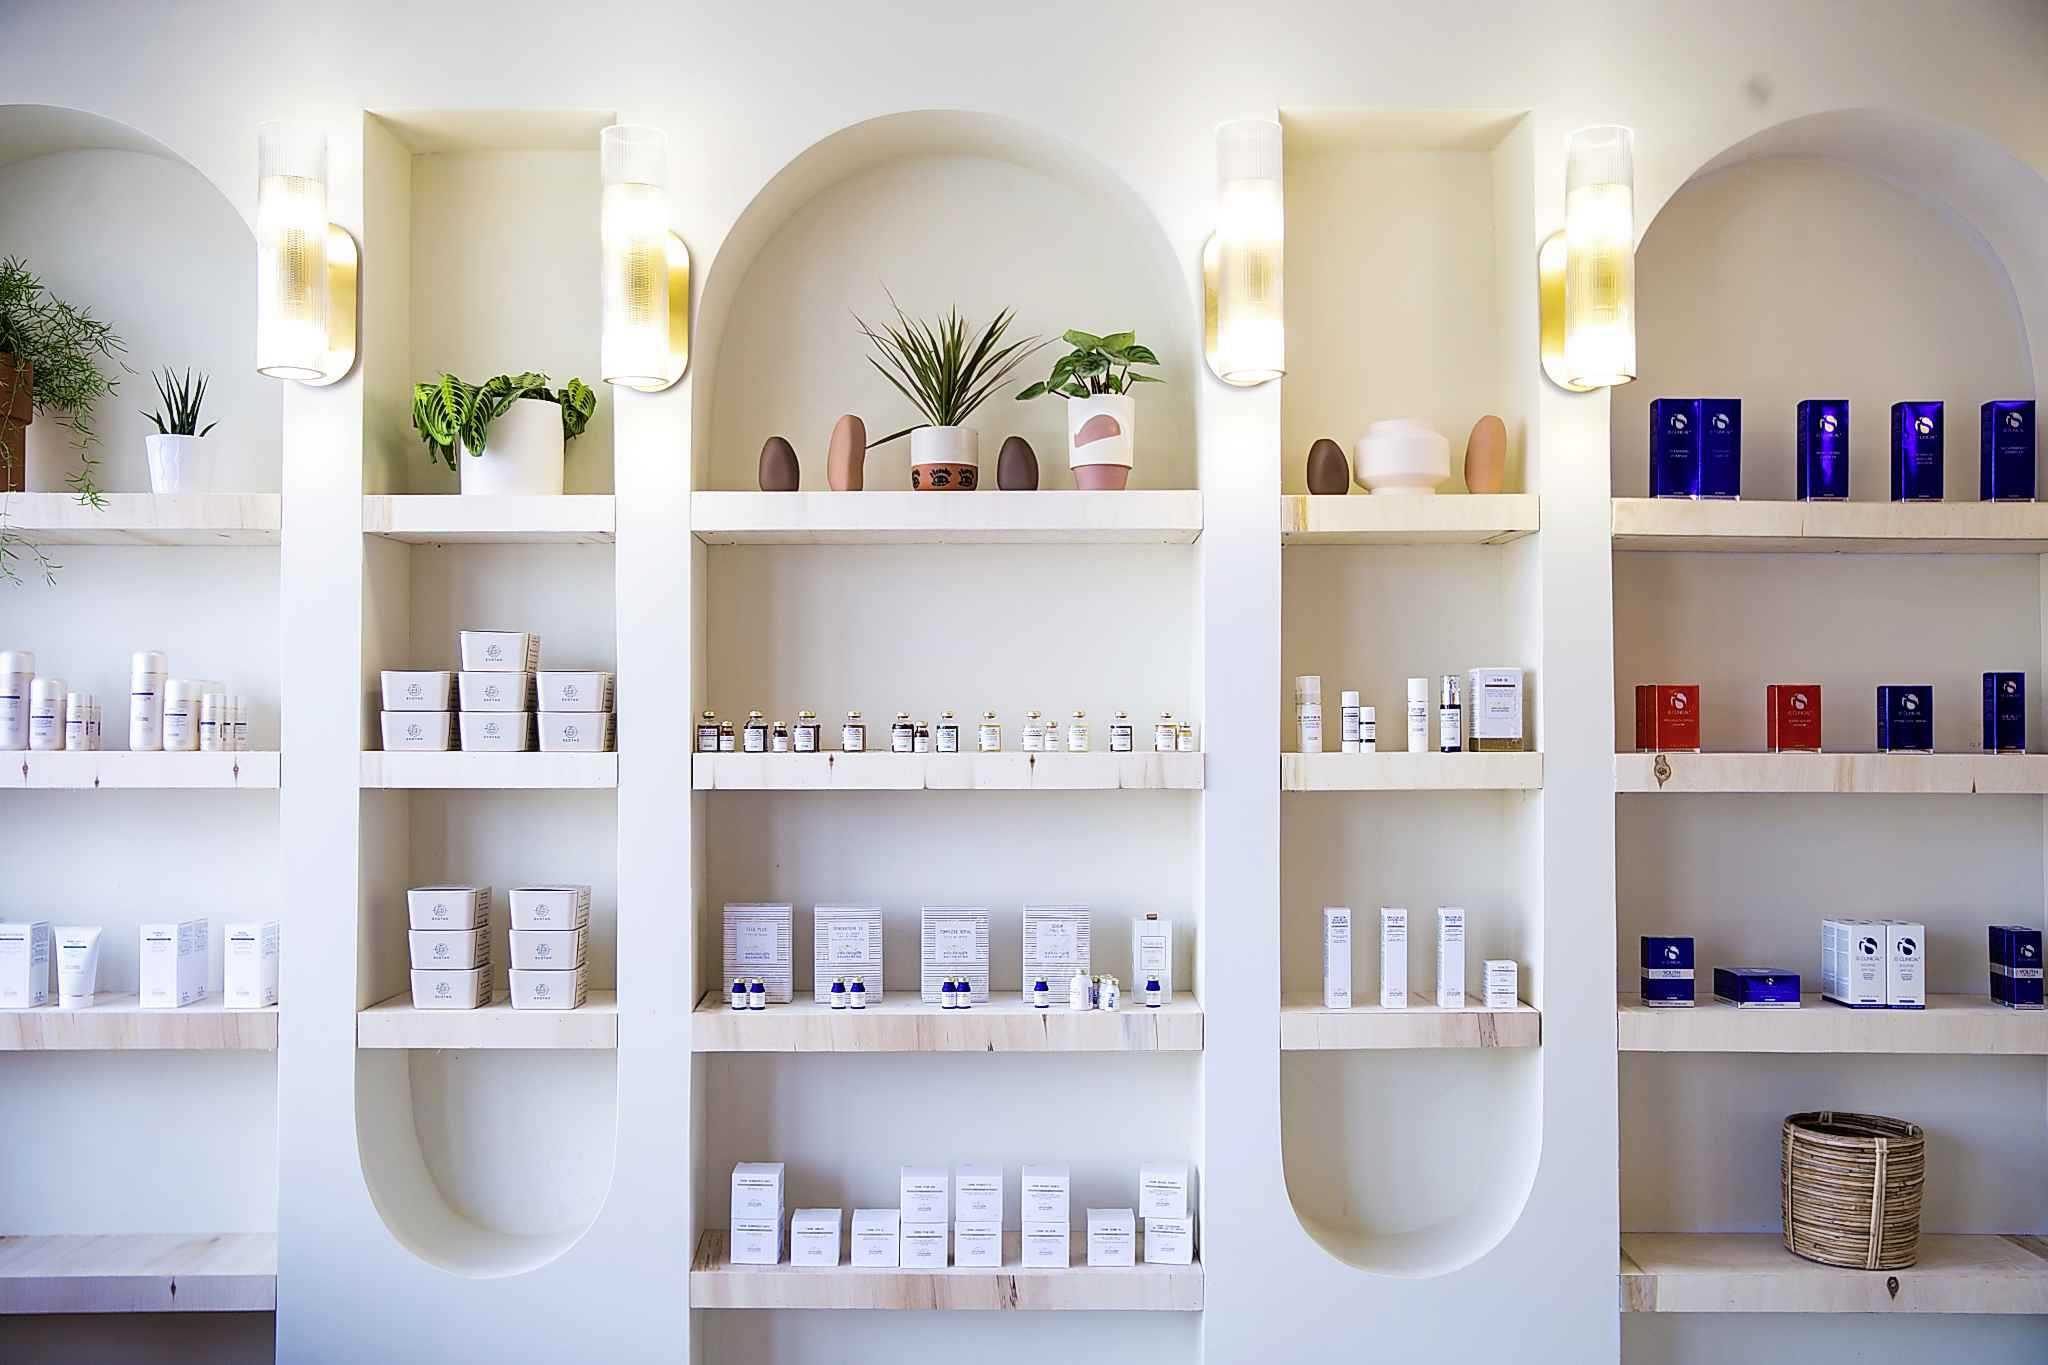 For Cable, there's no such thing as too many skin-care products, as long as you know what they're for and how to use them. (Mikaela MacKenzie / Winnipeg Free Press)